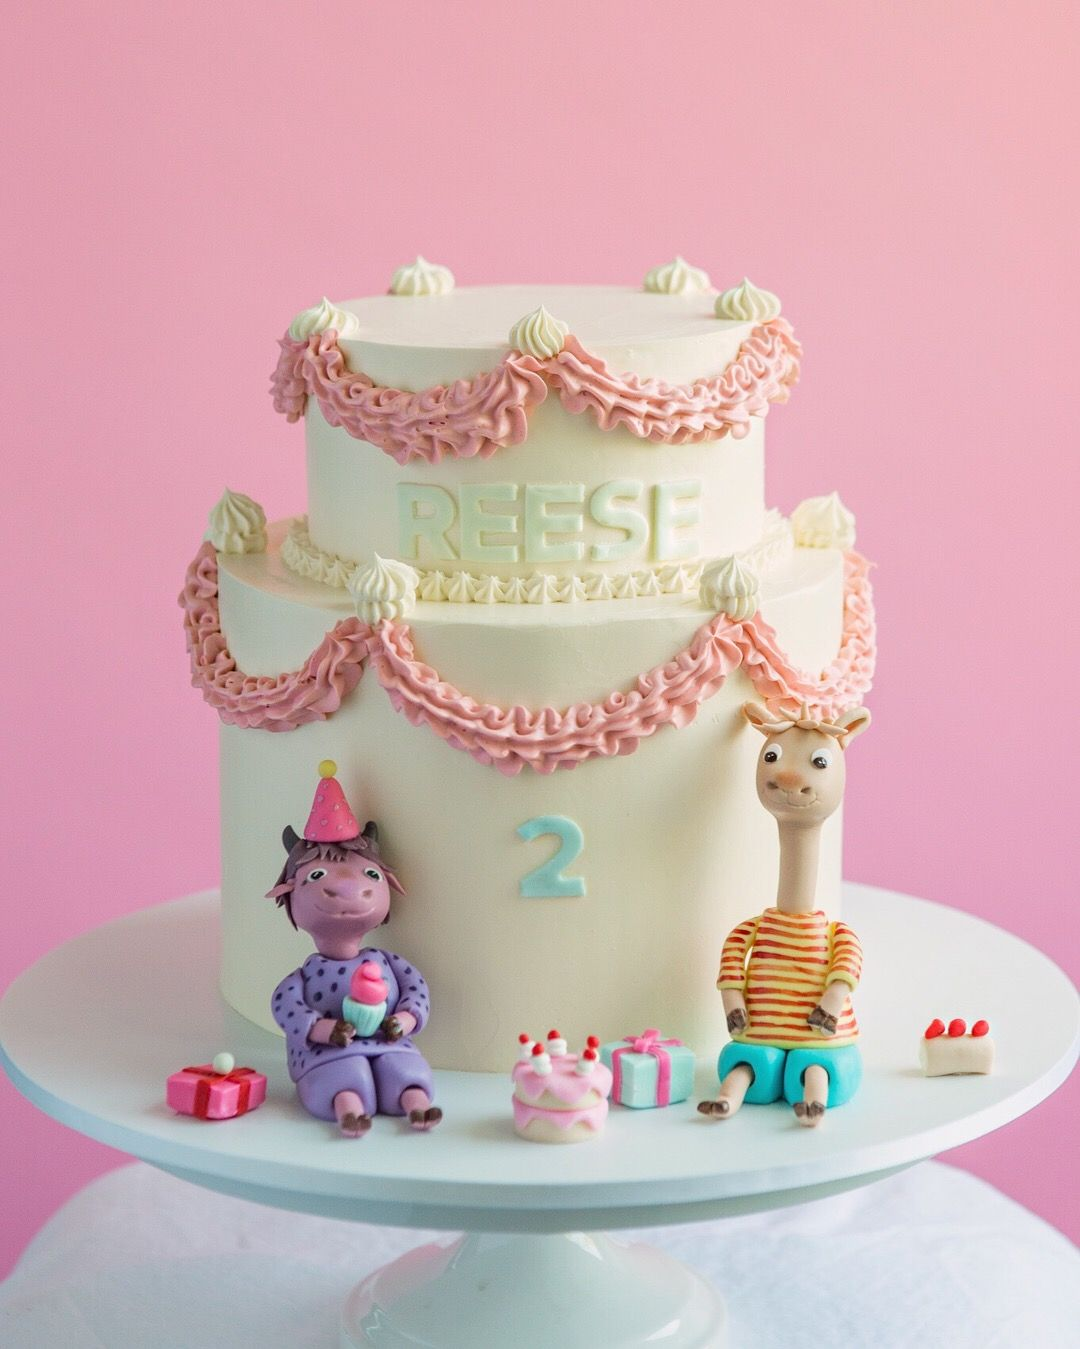 Fine Llama Llama Cake Sweet Cake For A Second Birthday Cake By Personalised Birthday Cards Beptaeletsinfo